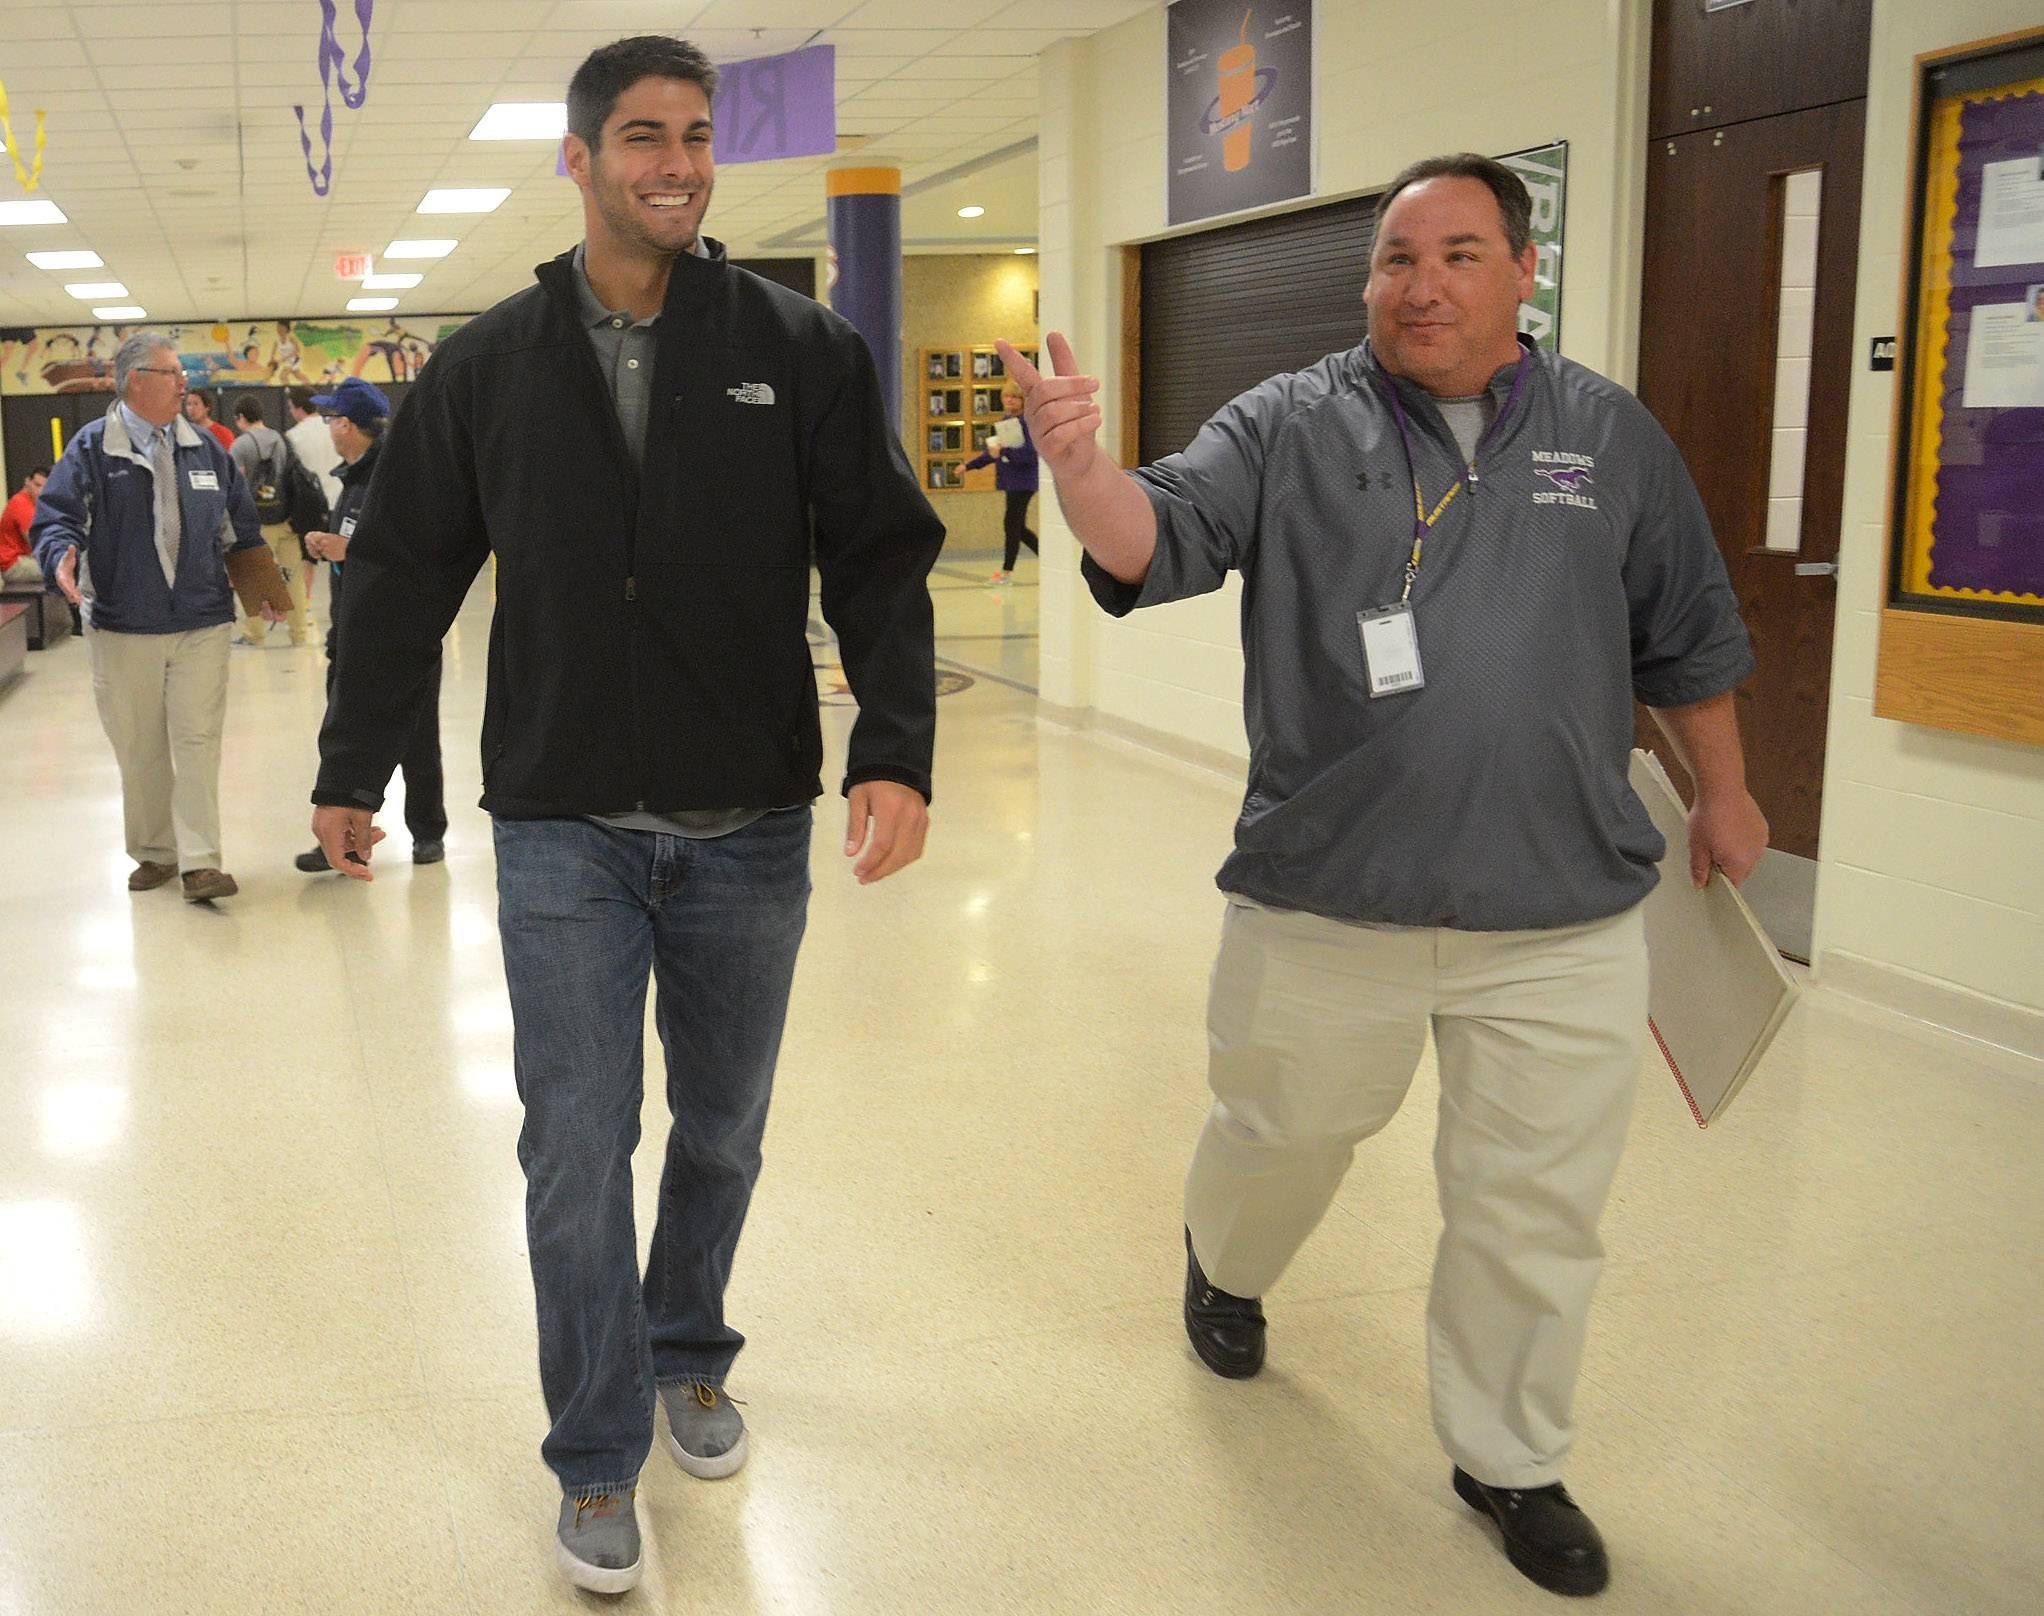 NFL quarterback prospect Jimmy Garappolo walks with former coach Tony Wolanski to the Rolling Meadows High School auditorium.